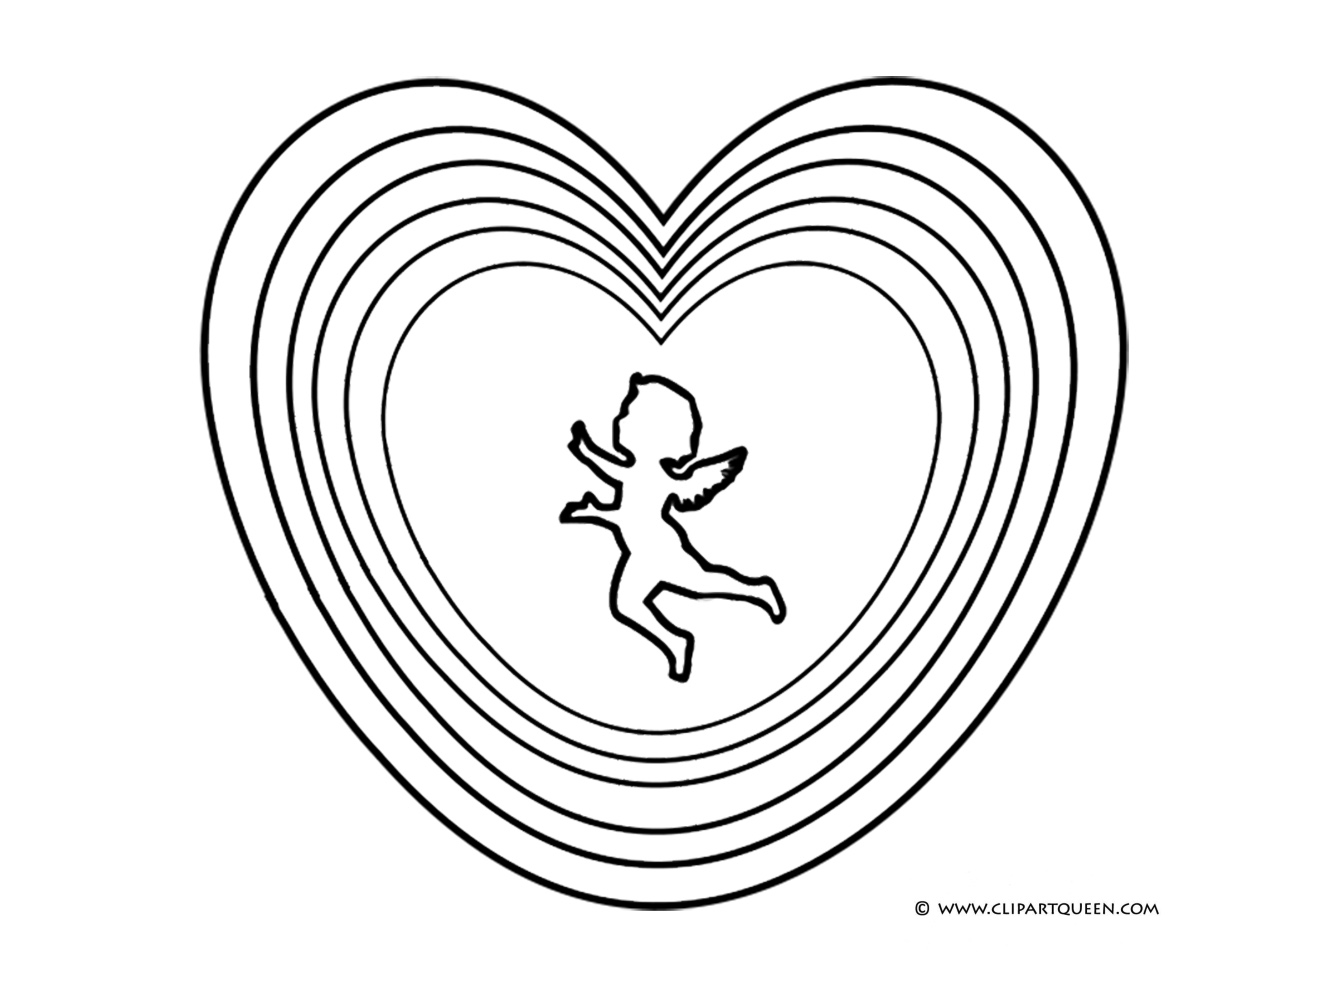 Cupid silhouette in shapes of hearts